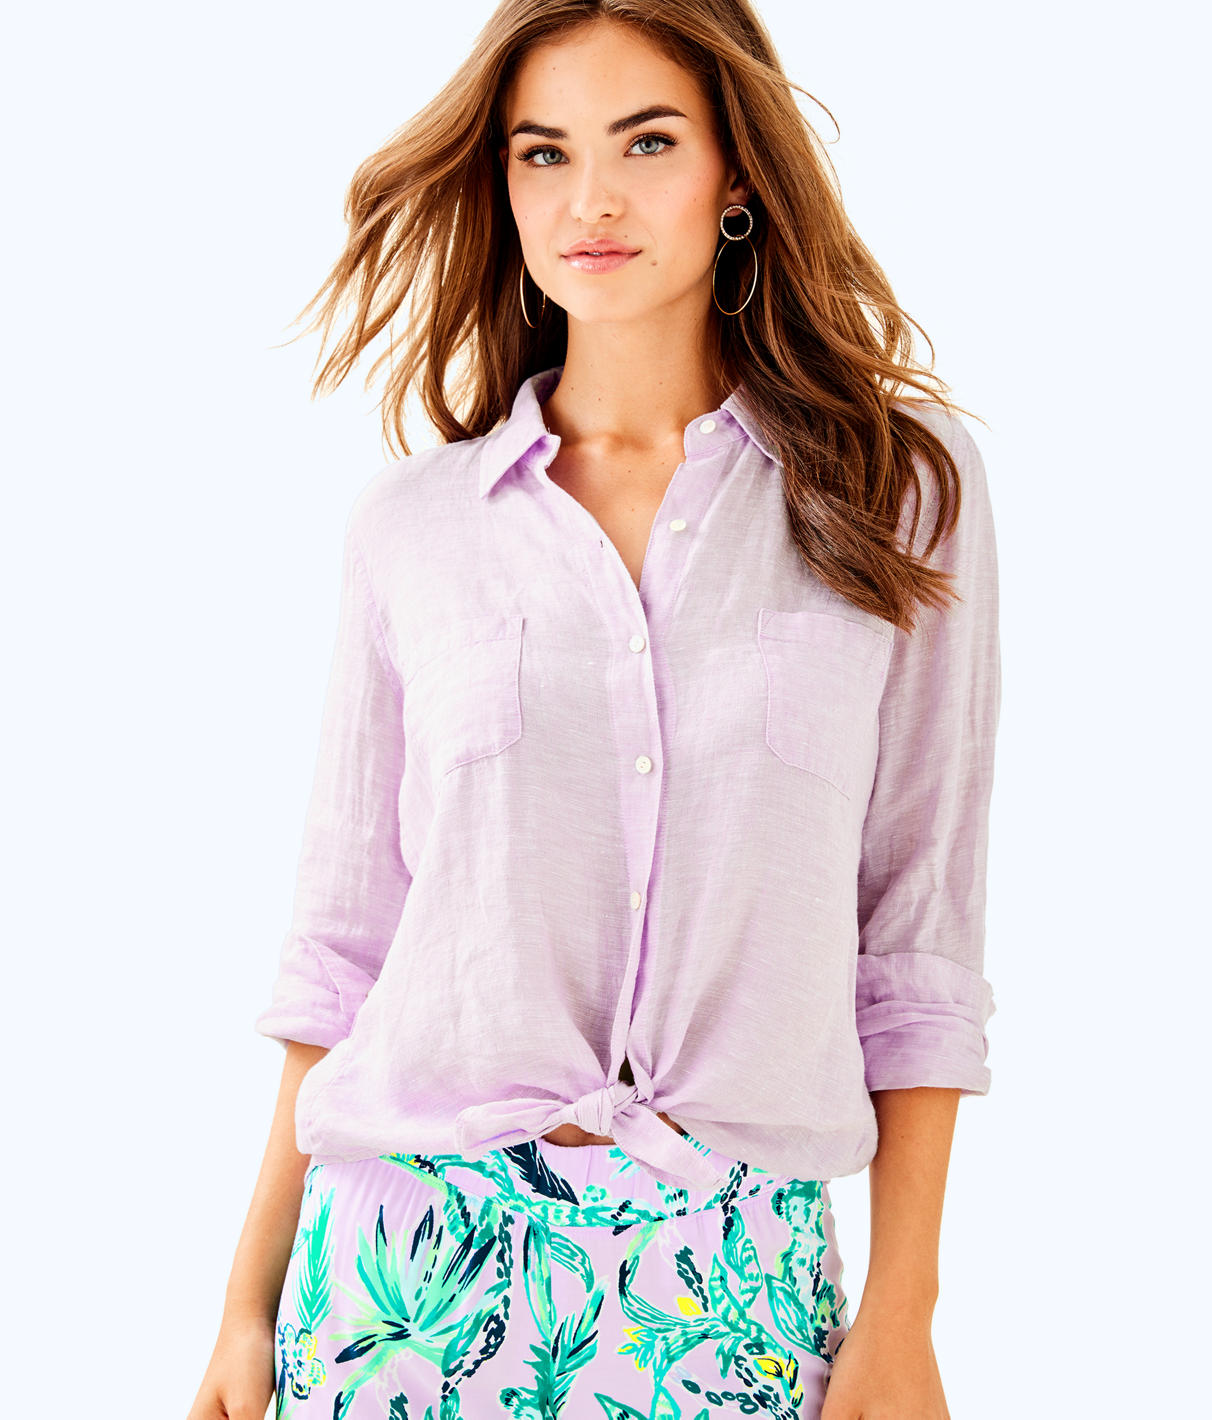 Lilly Pulitzer Lilly Pulitzer Womens Sea View Button-Down Top